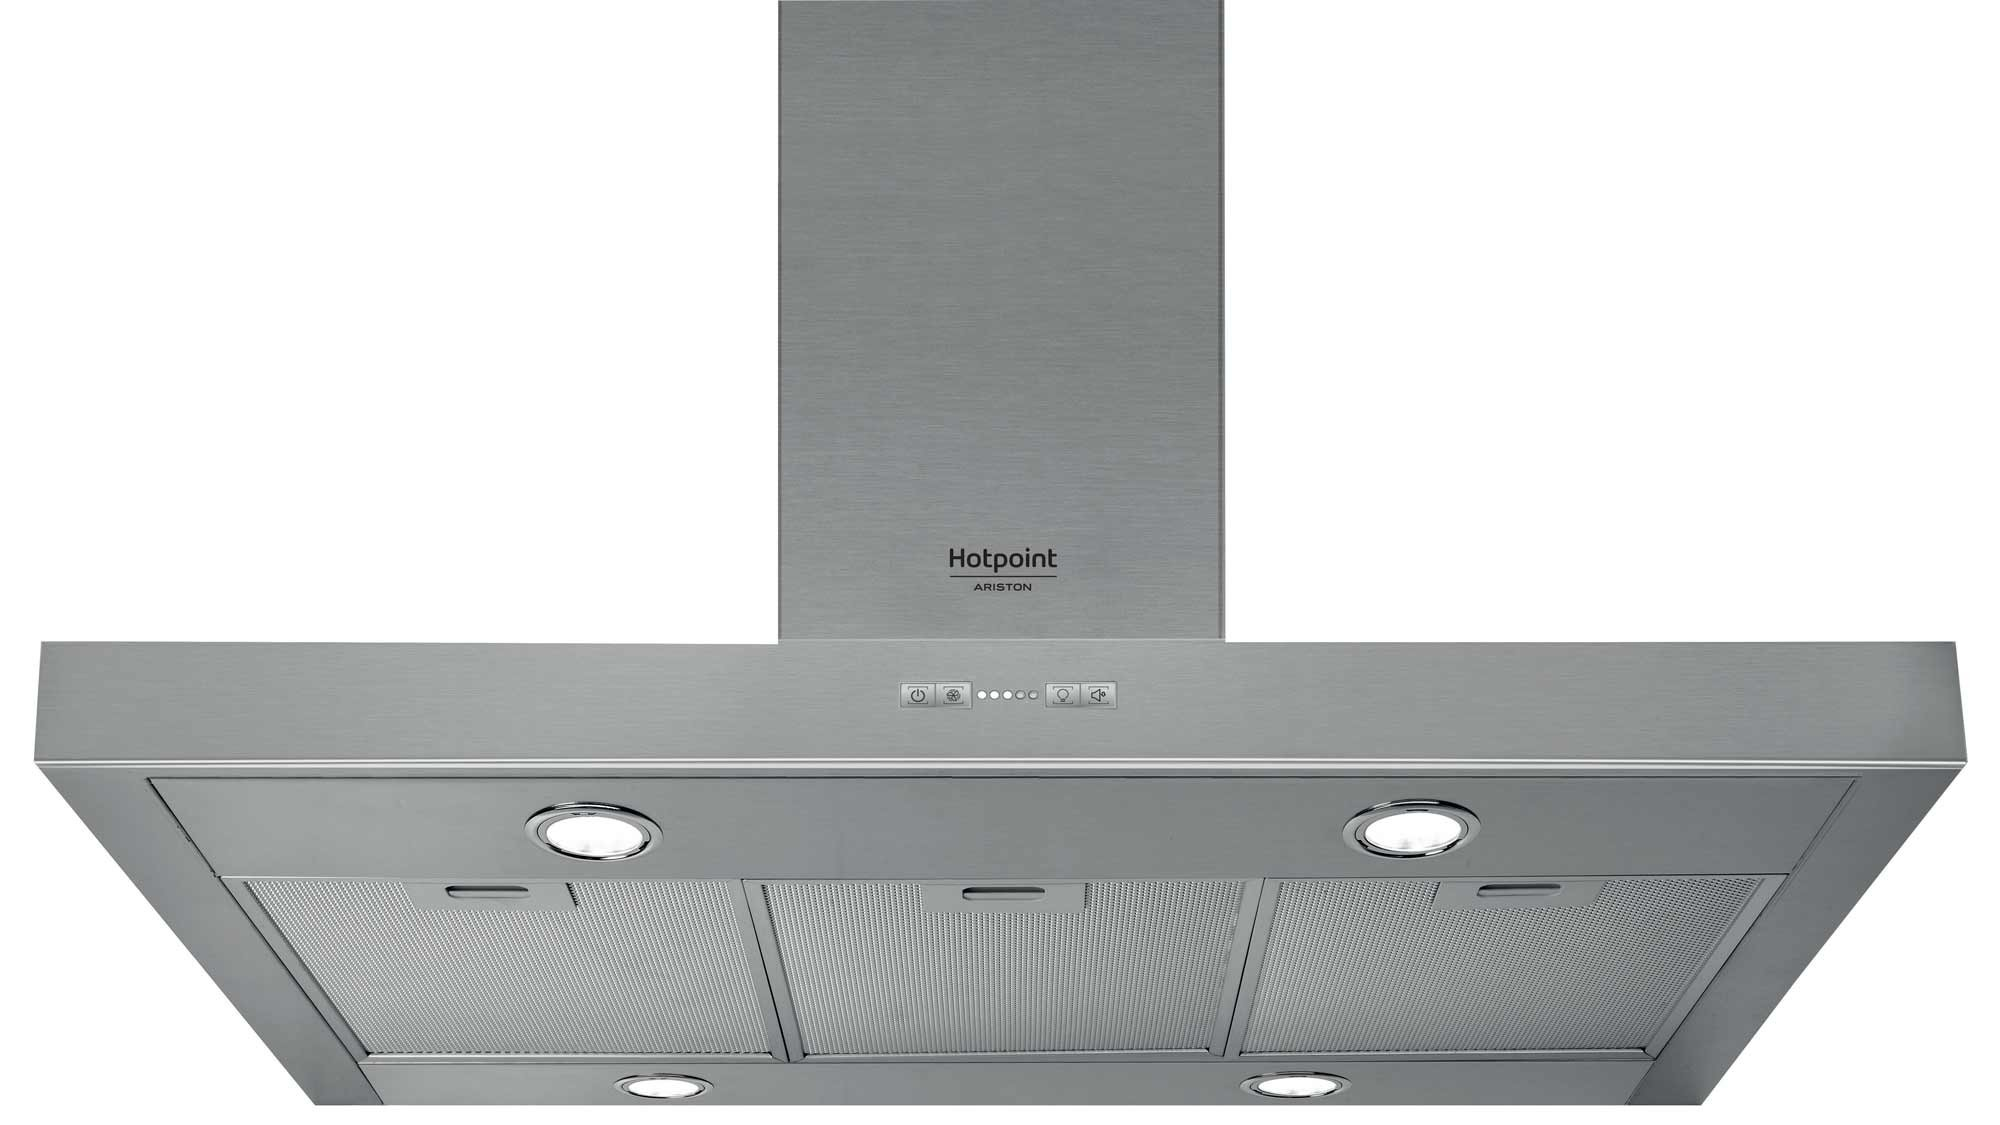 HOTPOINT-ARISTON - HIBS 9.7 FLBX